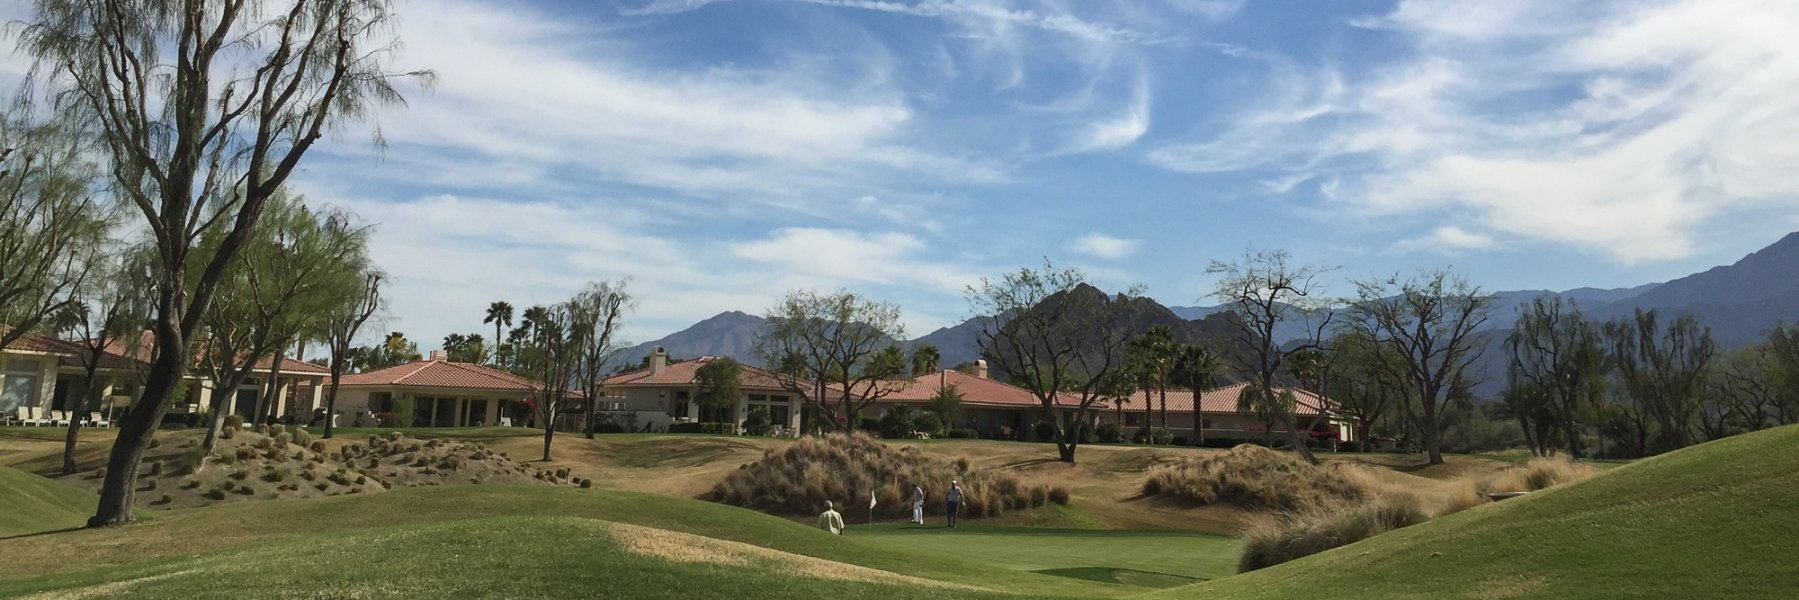 PGA West Nicklaus Private is a community of homes in La Quinta California